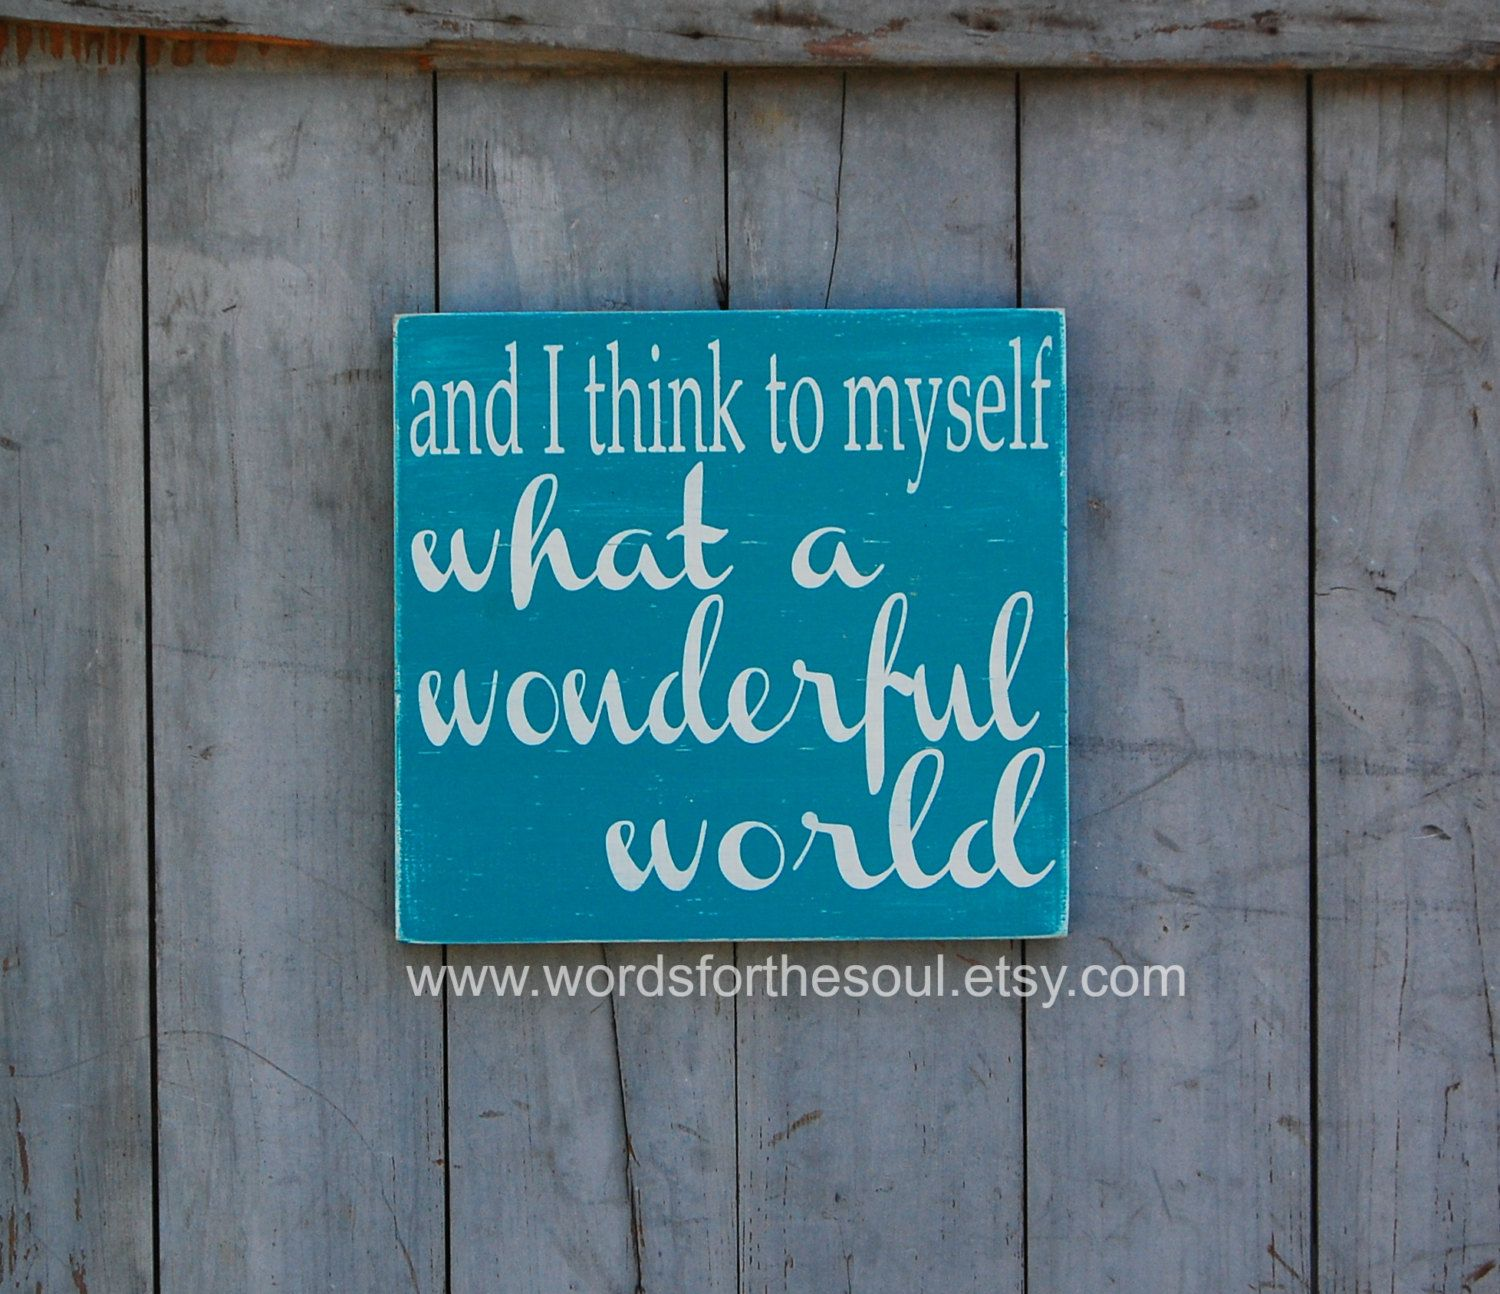 What a wonderful world sign inspirational decor wooden sign